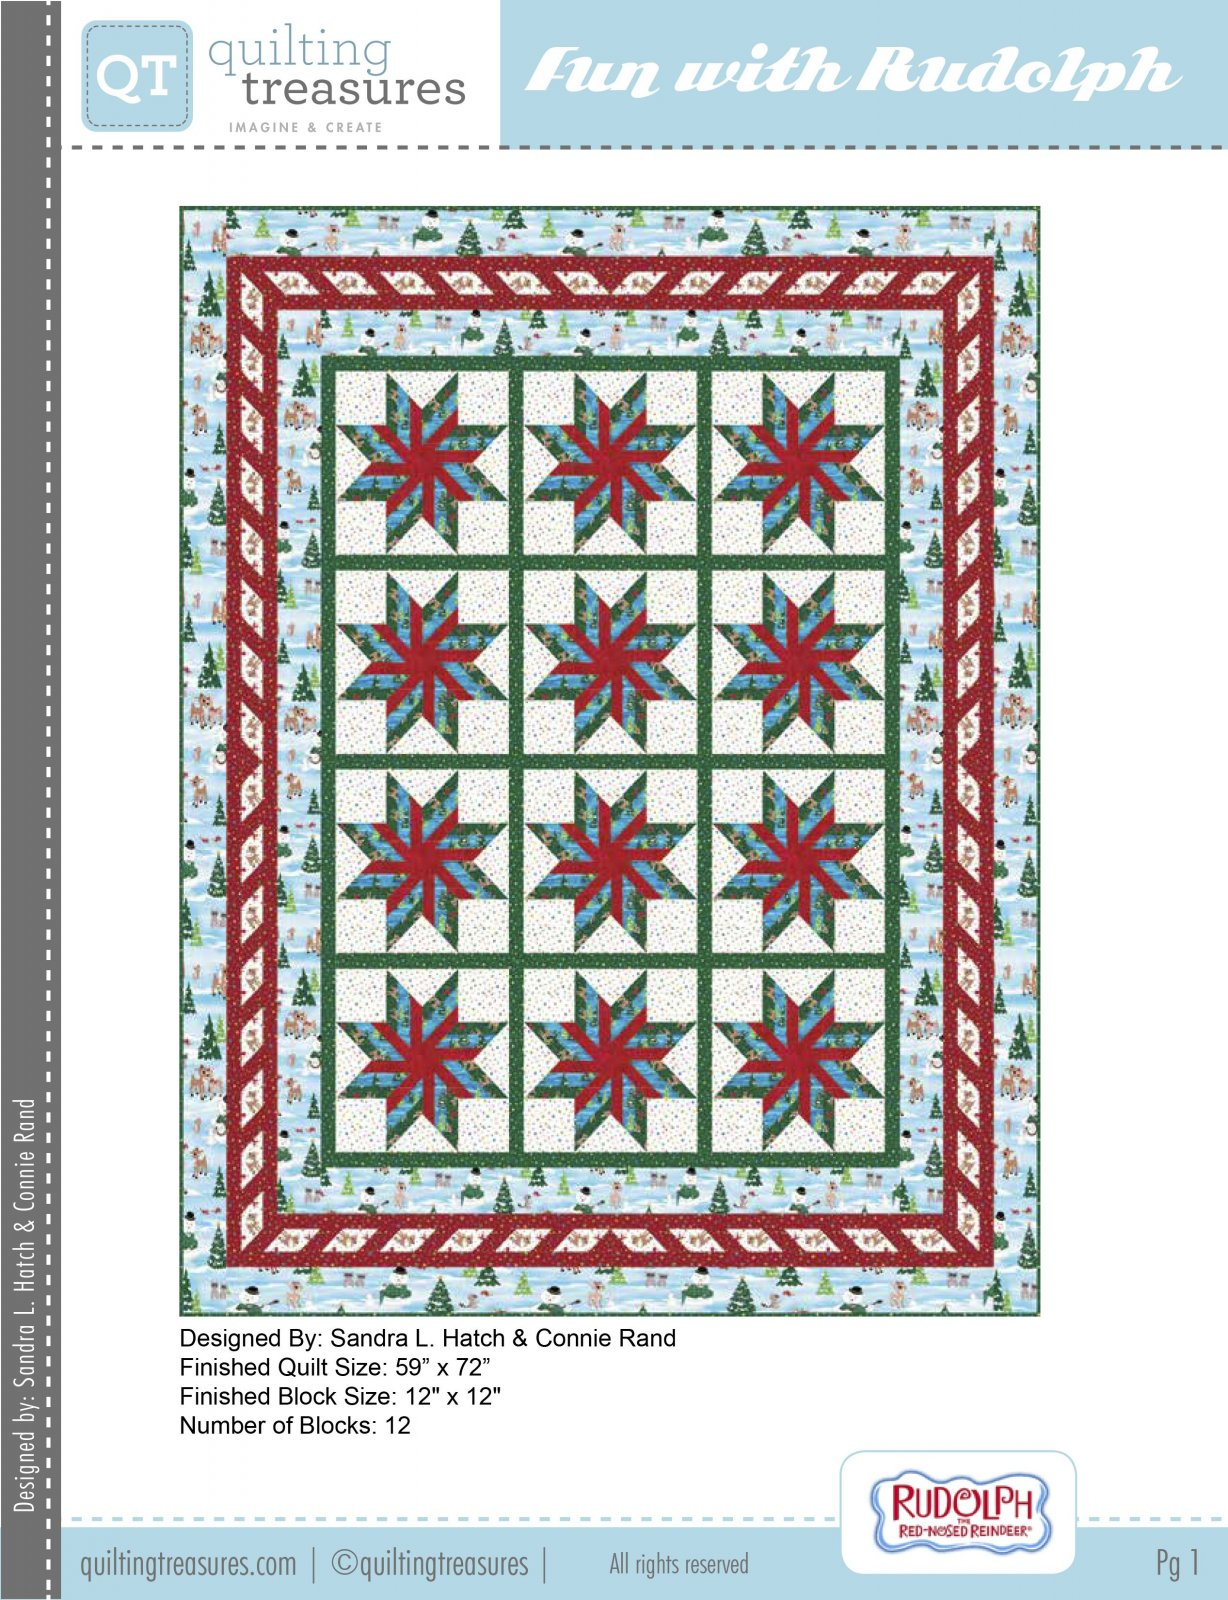 Fun With Rudolph Quilt Kit